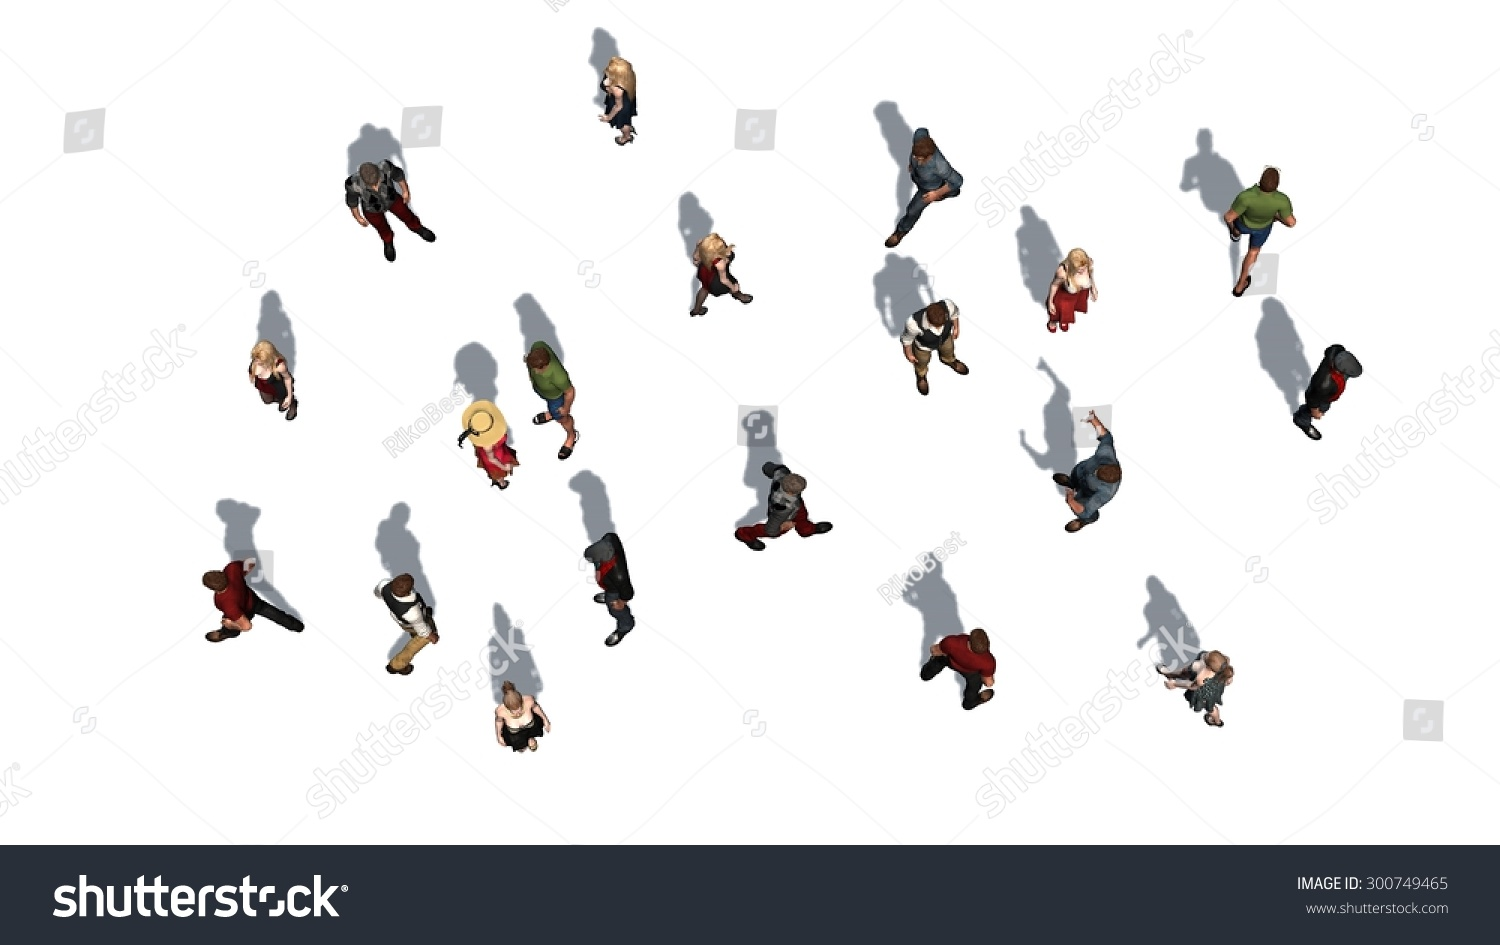 Stock Photo A Crowd Of People In Top View Isolated On White Background